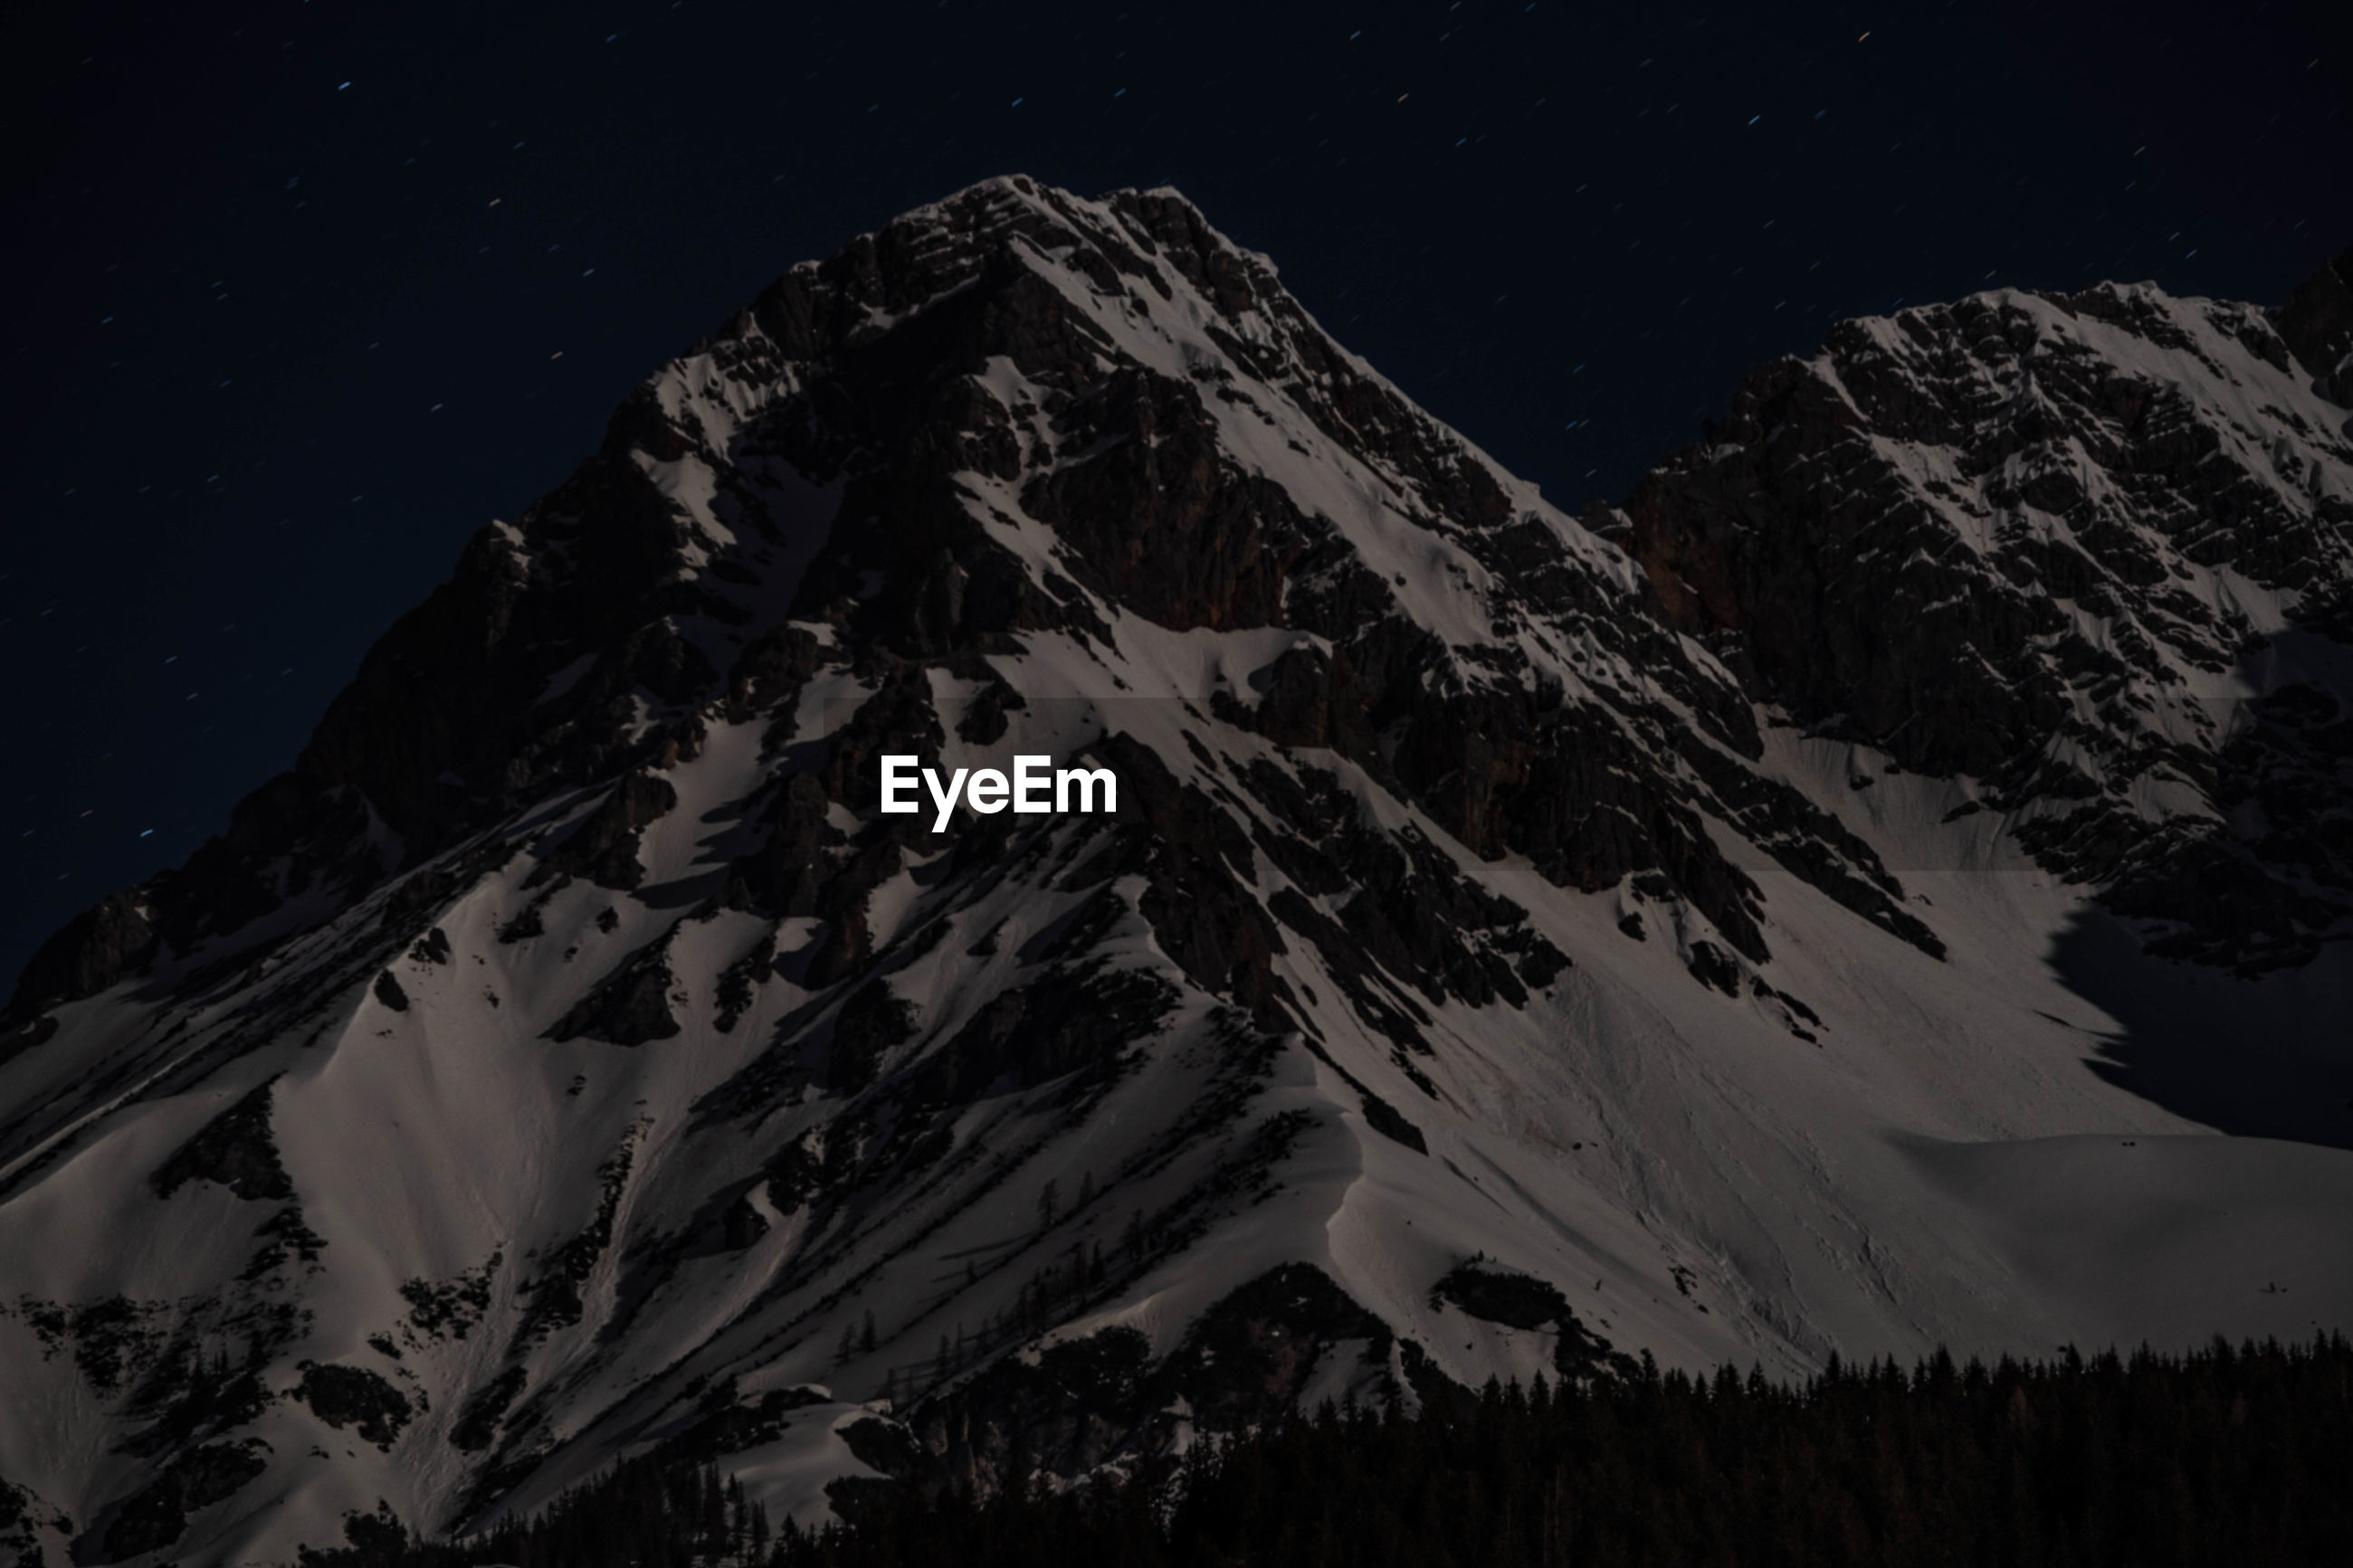 AERIAL VIEW OF SNOWCAPPED MOUNTAIN AGAINST SKY AT NIGHT